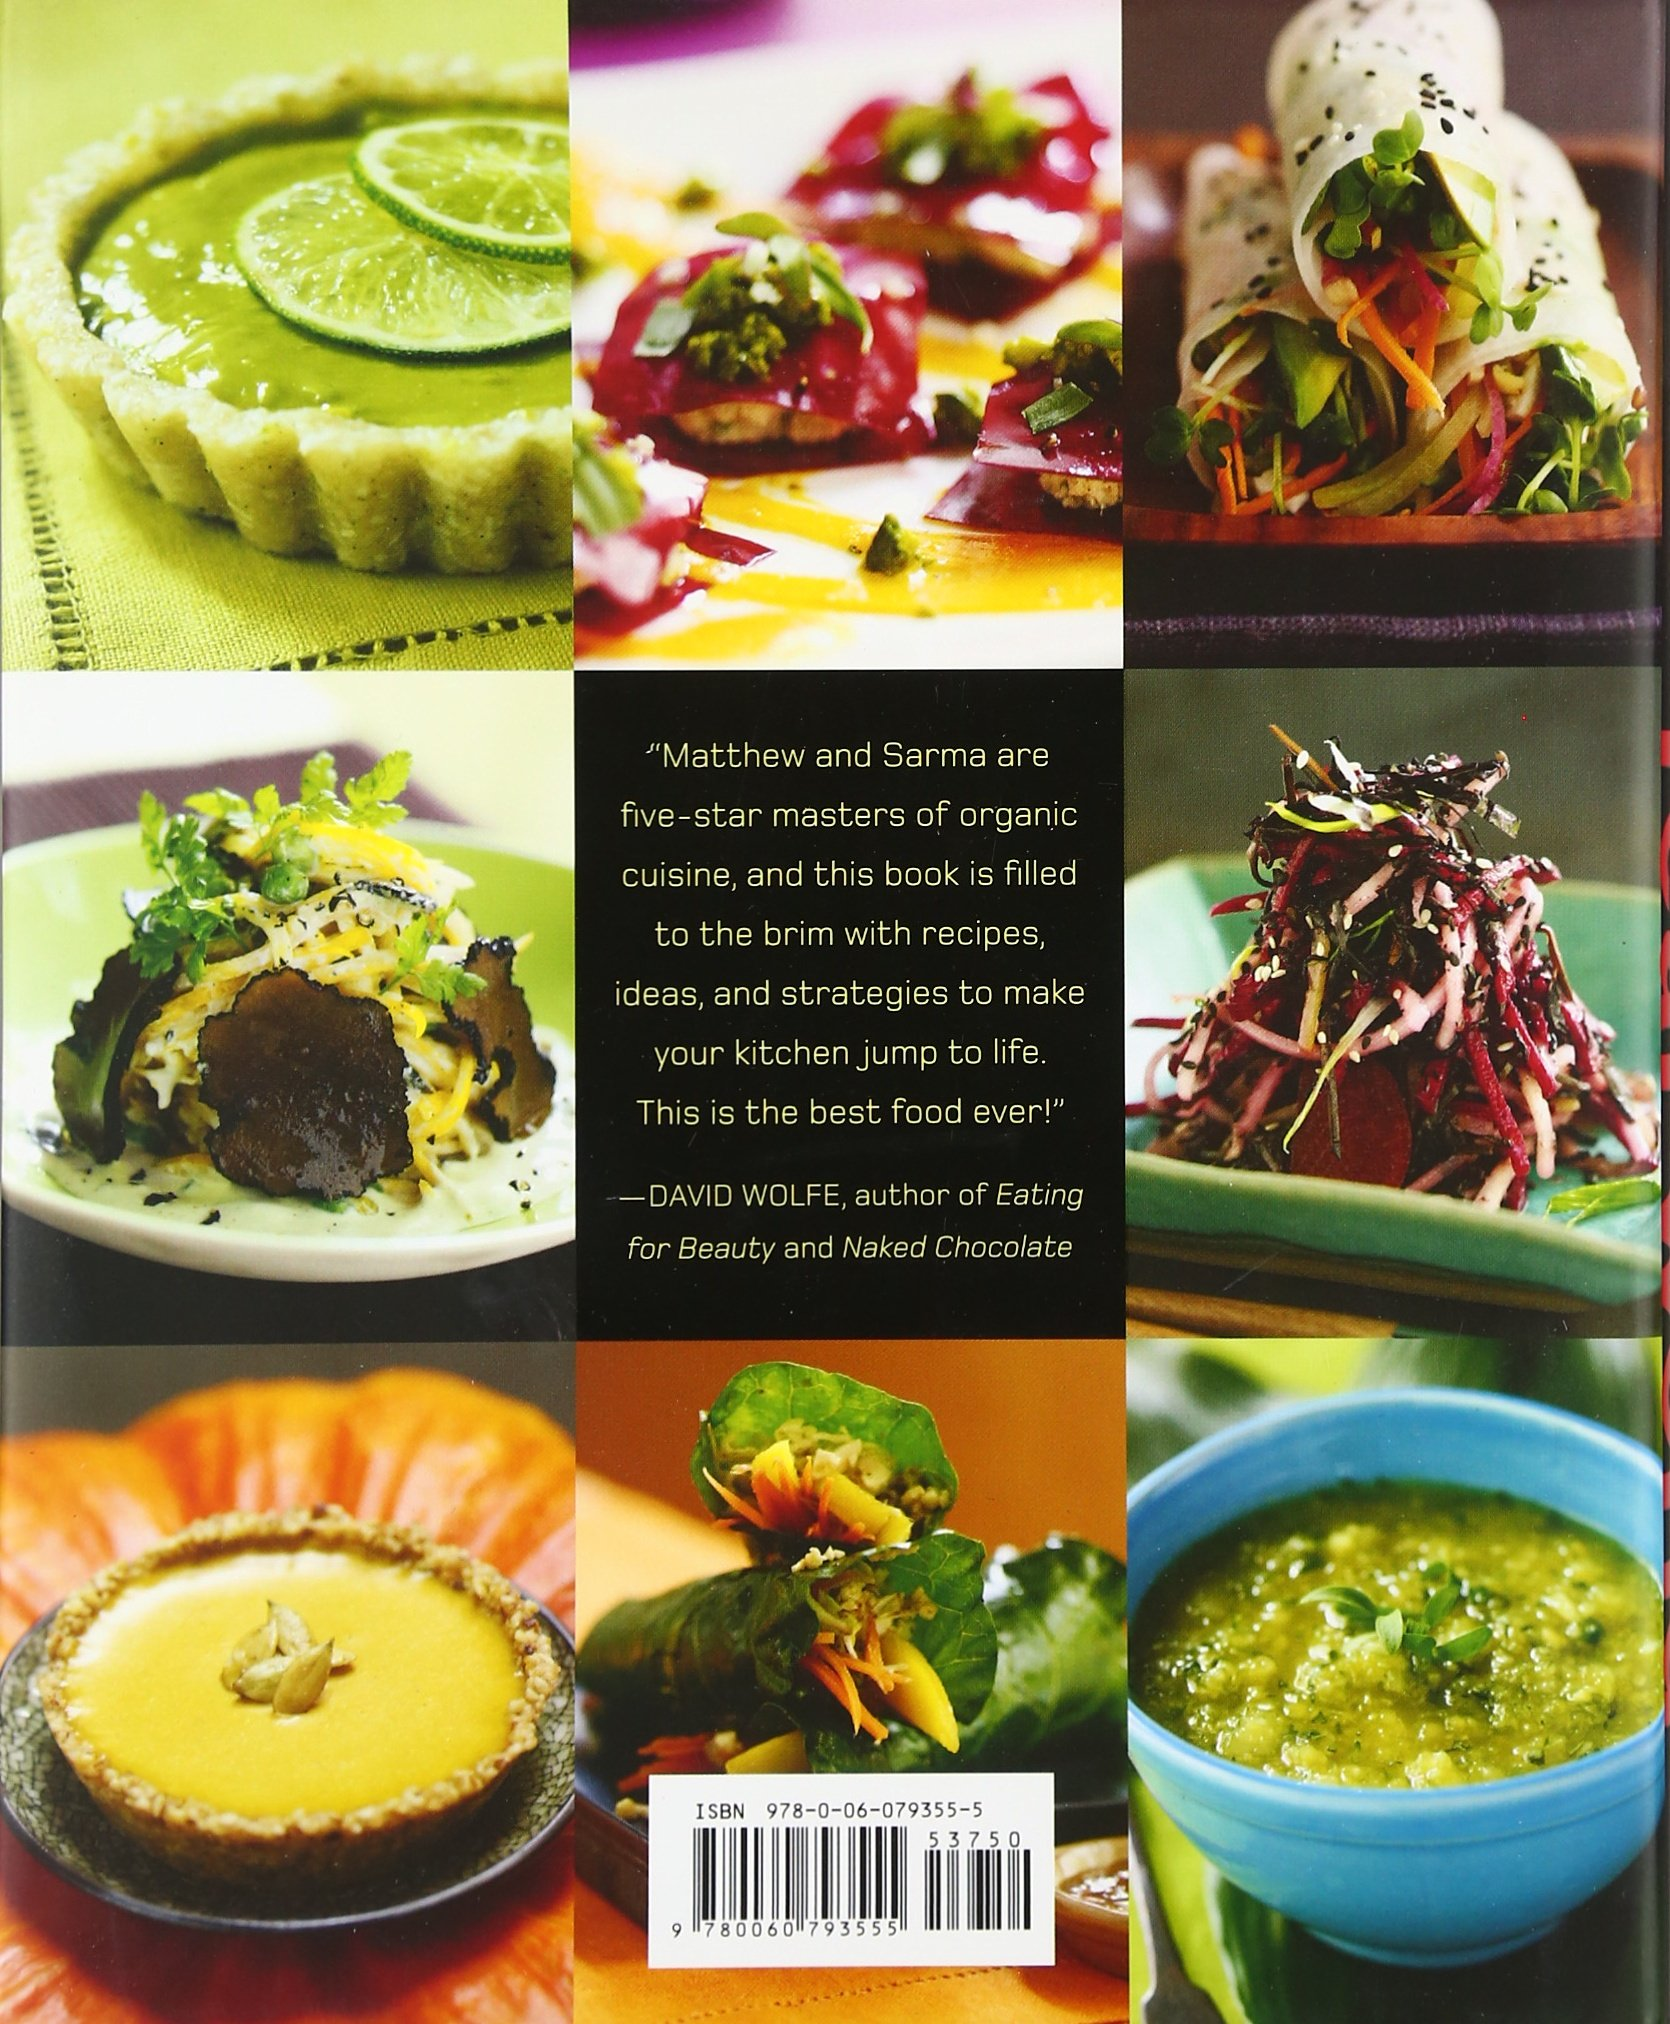 Raw foodreal world 100 recipes to get the glow matthew kenney raw foodreal world 100 recipes to get the glow matthew kenney sarma melngailis 9780060793555 amazon books forumfinder Gallery